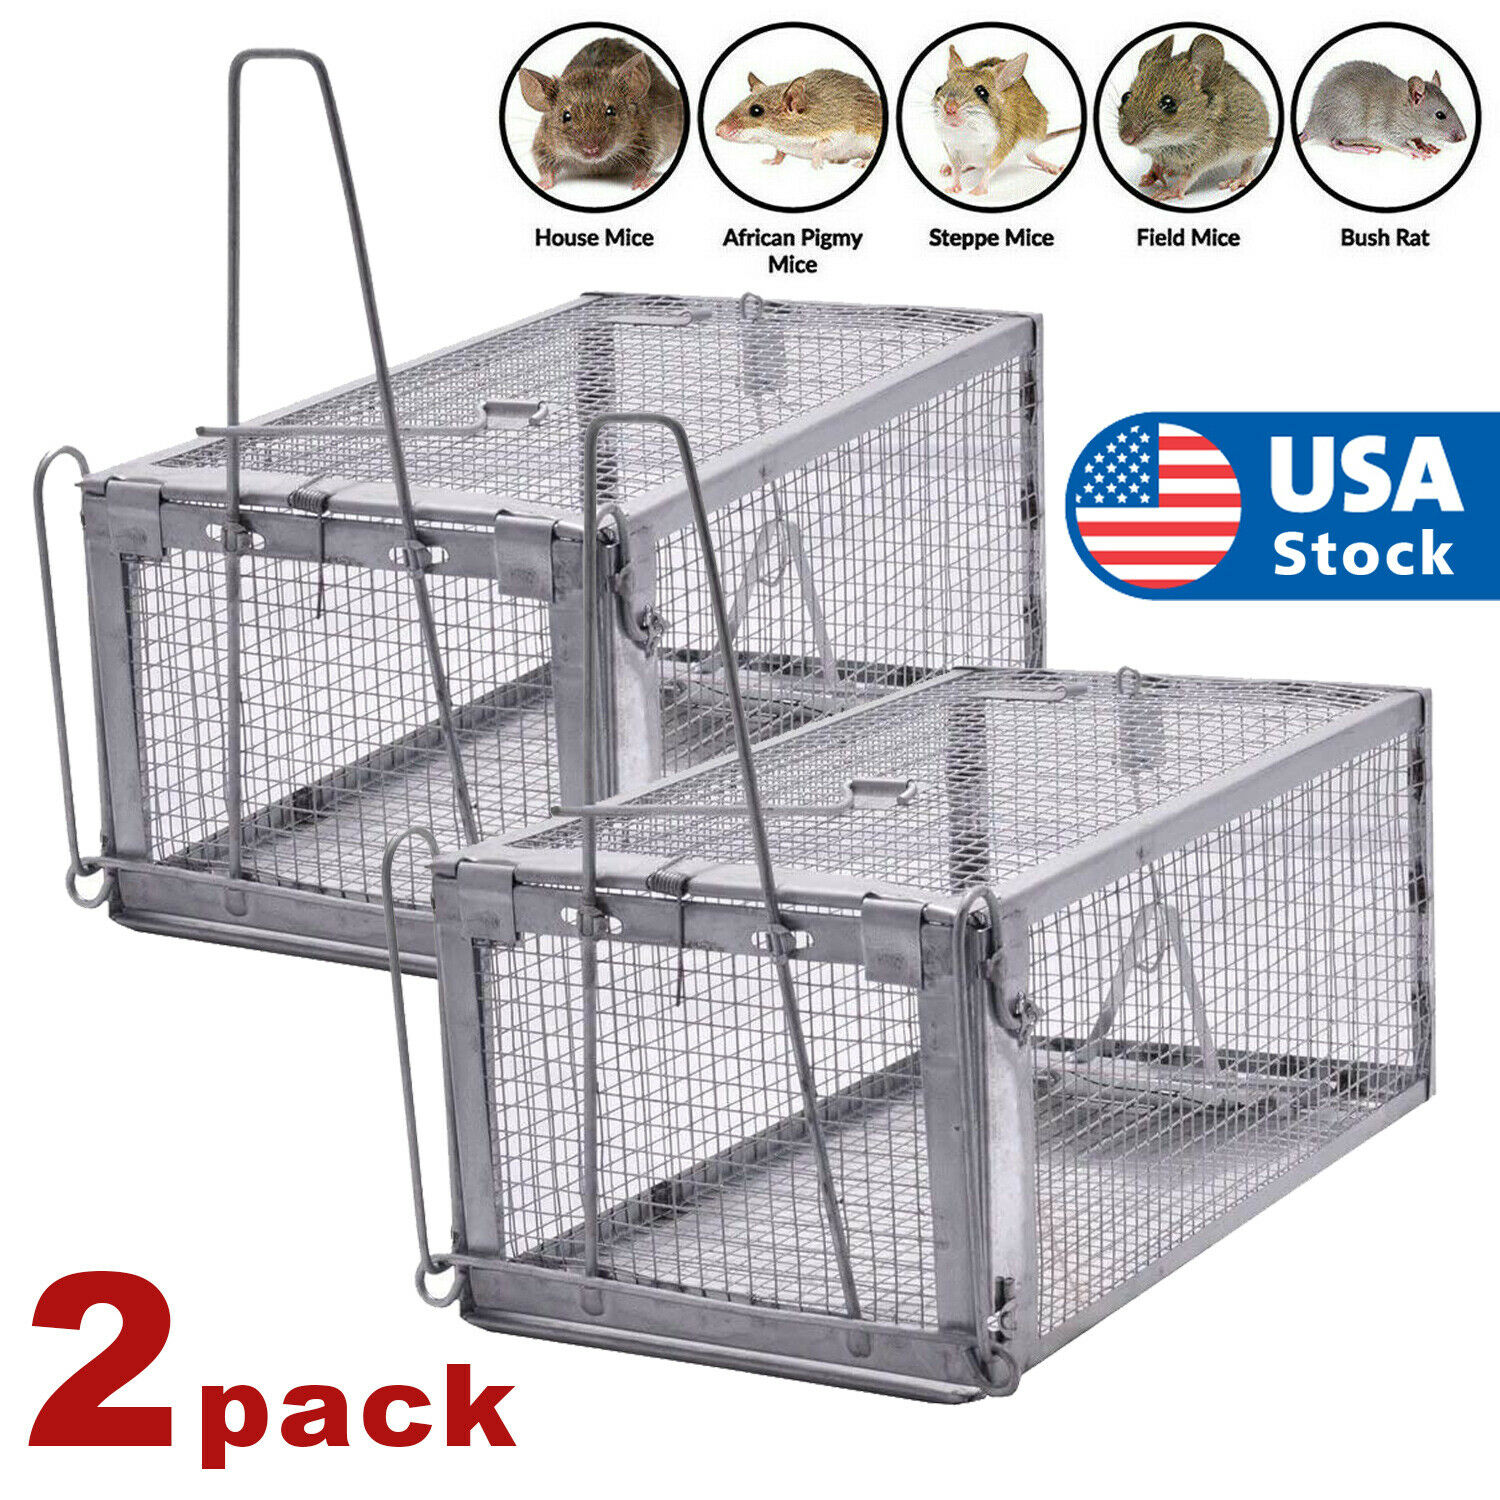 2x Rat Trap Cage Small Live Animal Pest Rodent Mouse Control Catch Hunting Trap Animal & Rodent Control